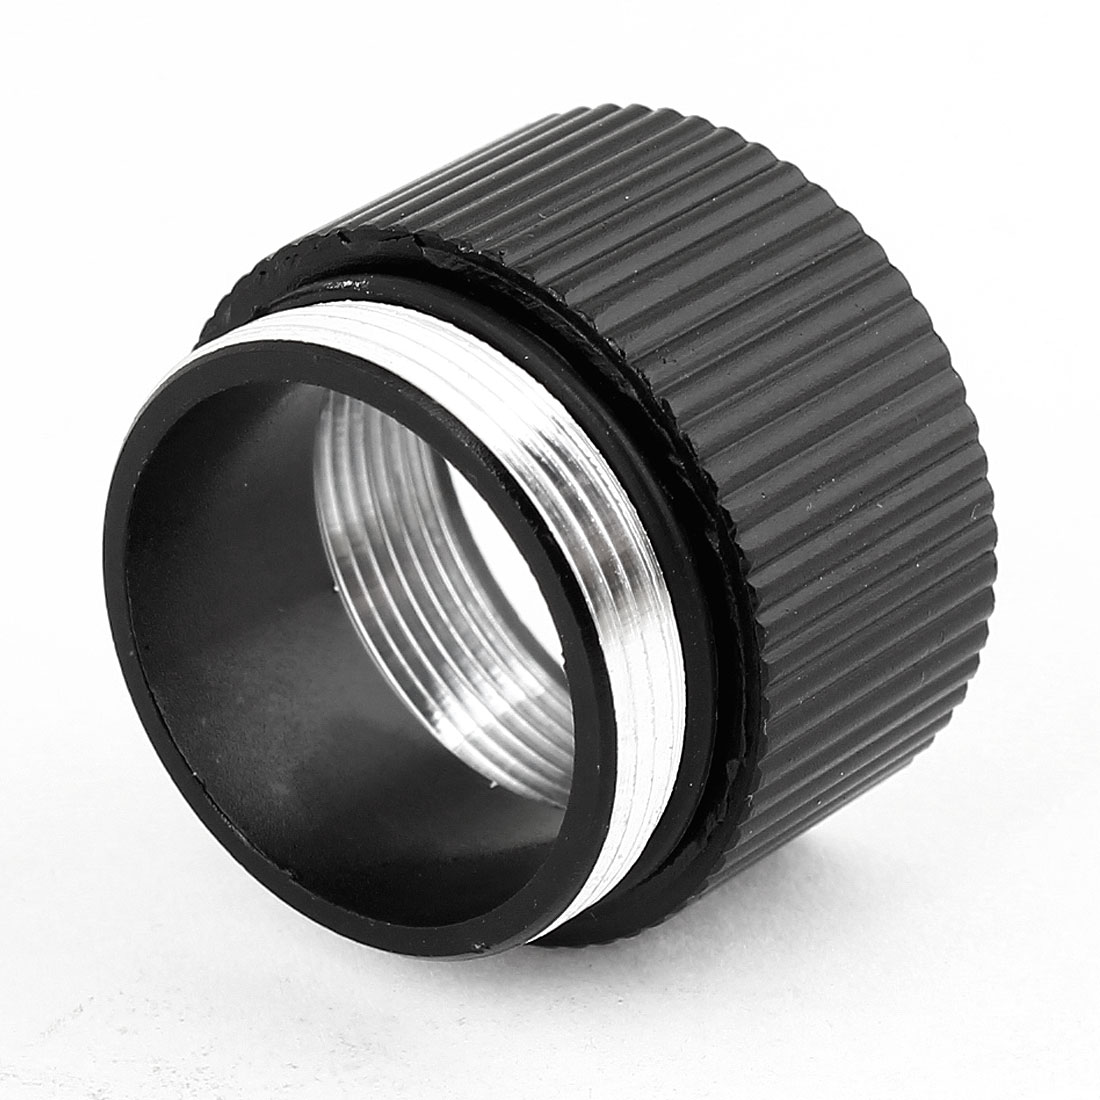 The Flashlight 18650 Lithium Battery Extension Tube Lengthened Central Adapter